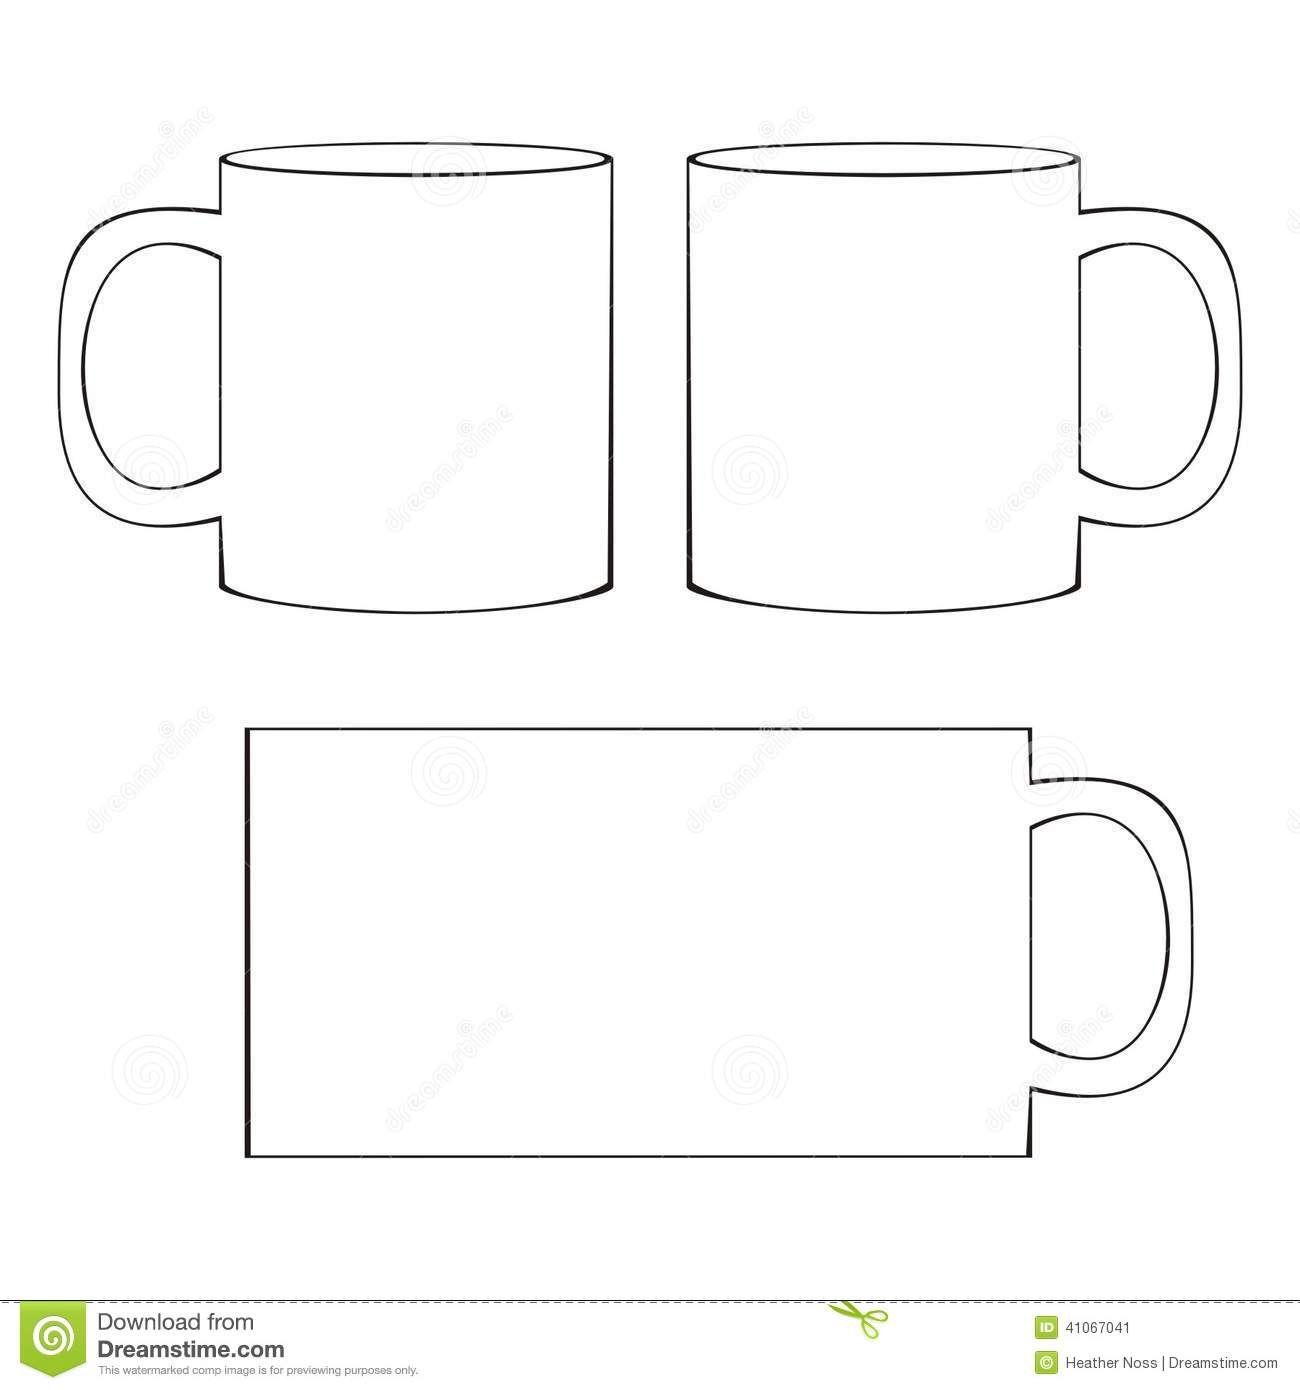 Coffee Cup Template Coffee mug template blank cup